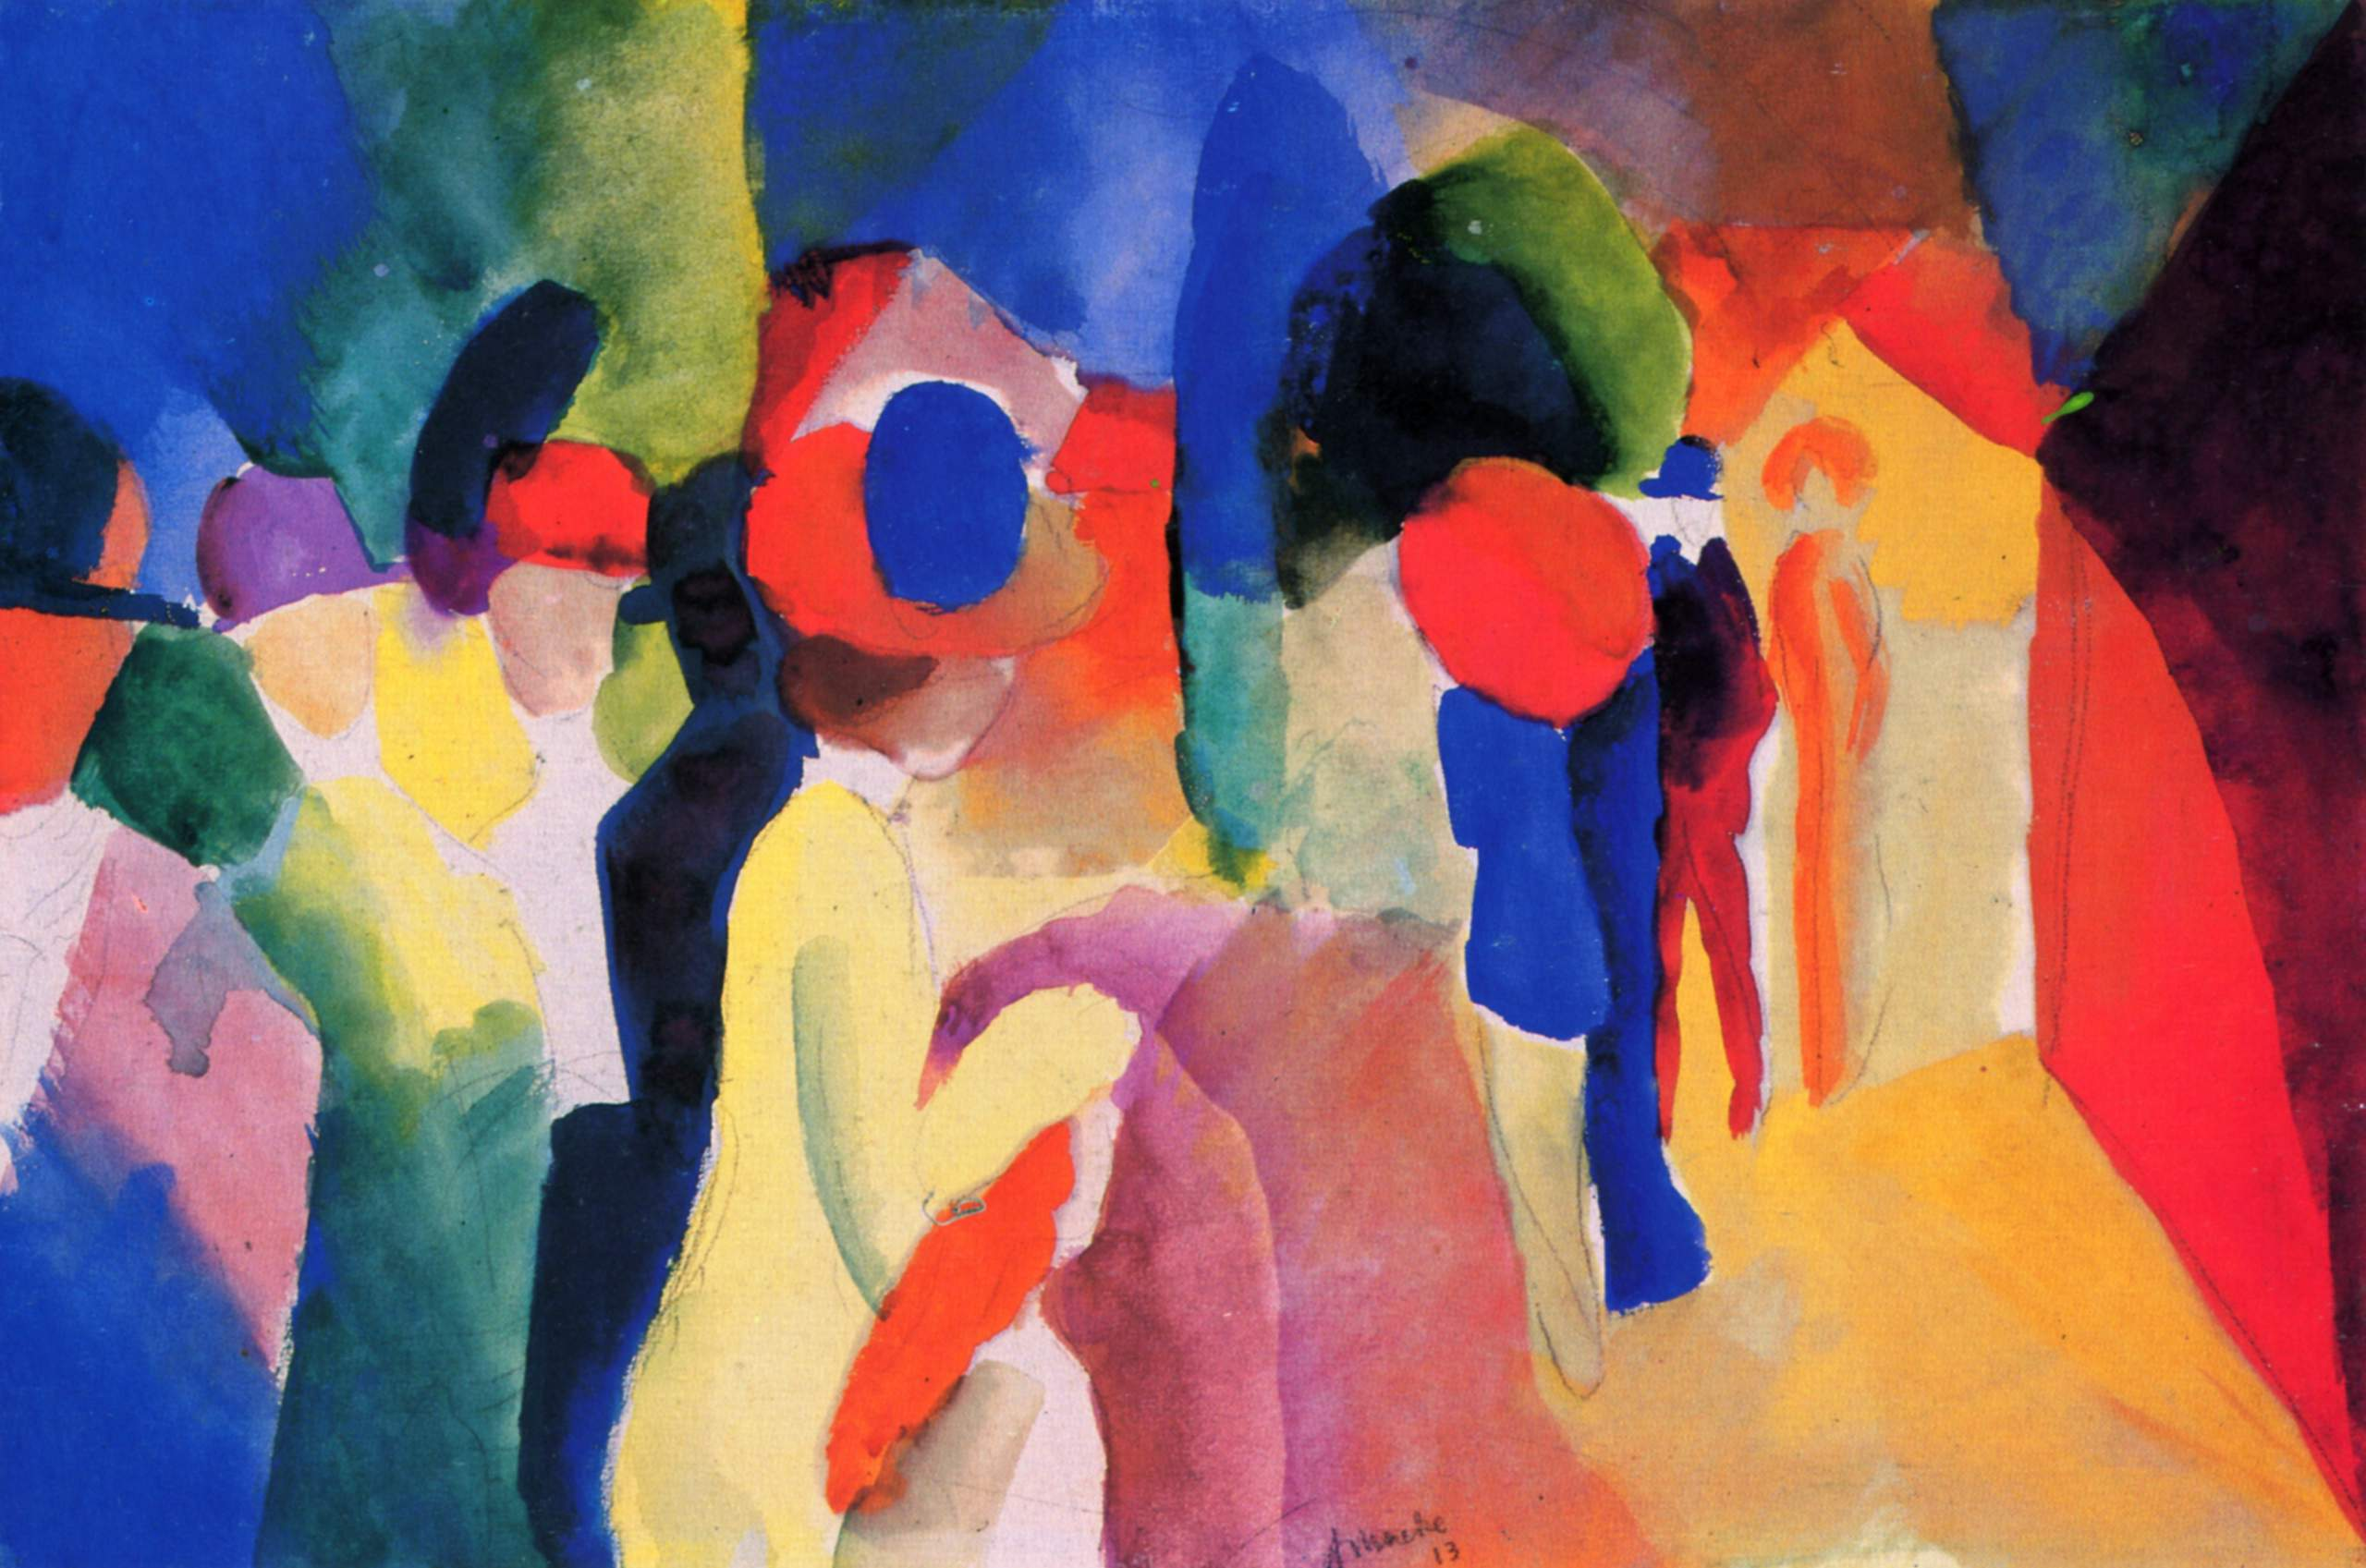 fauvism and abstract expressionism essay - abstract expressionism is making its comeback within the art world coined as an artist movement in the 1940's and 1950's, at the new york school, american abstract expressionist began to express many ideas relevant to humanity and the world around human civilization.